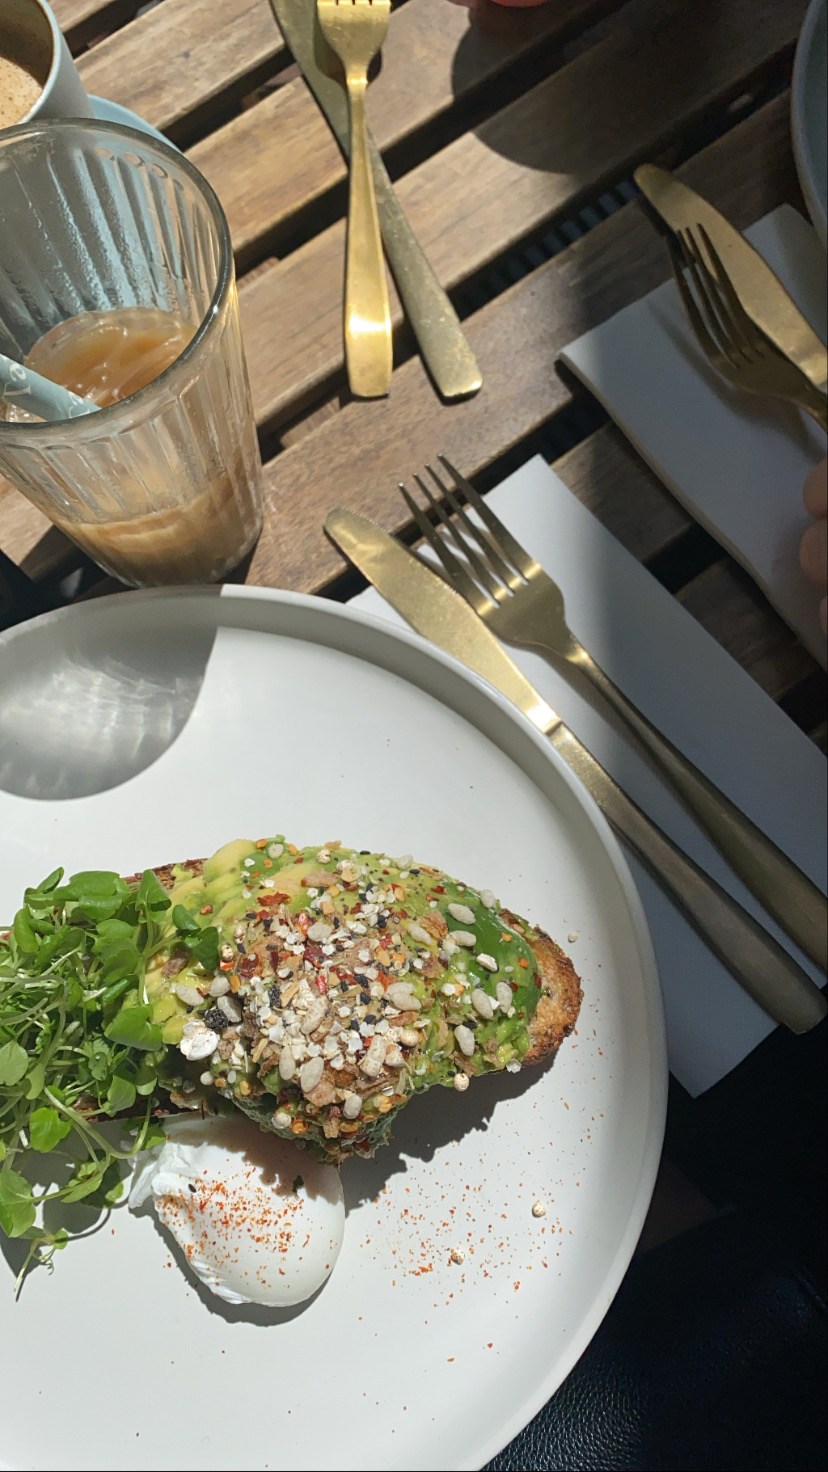 Best places to get Brunch in the Gold Coast